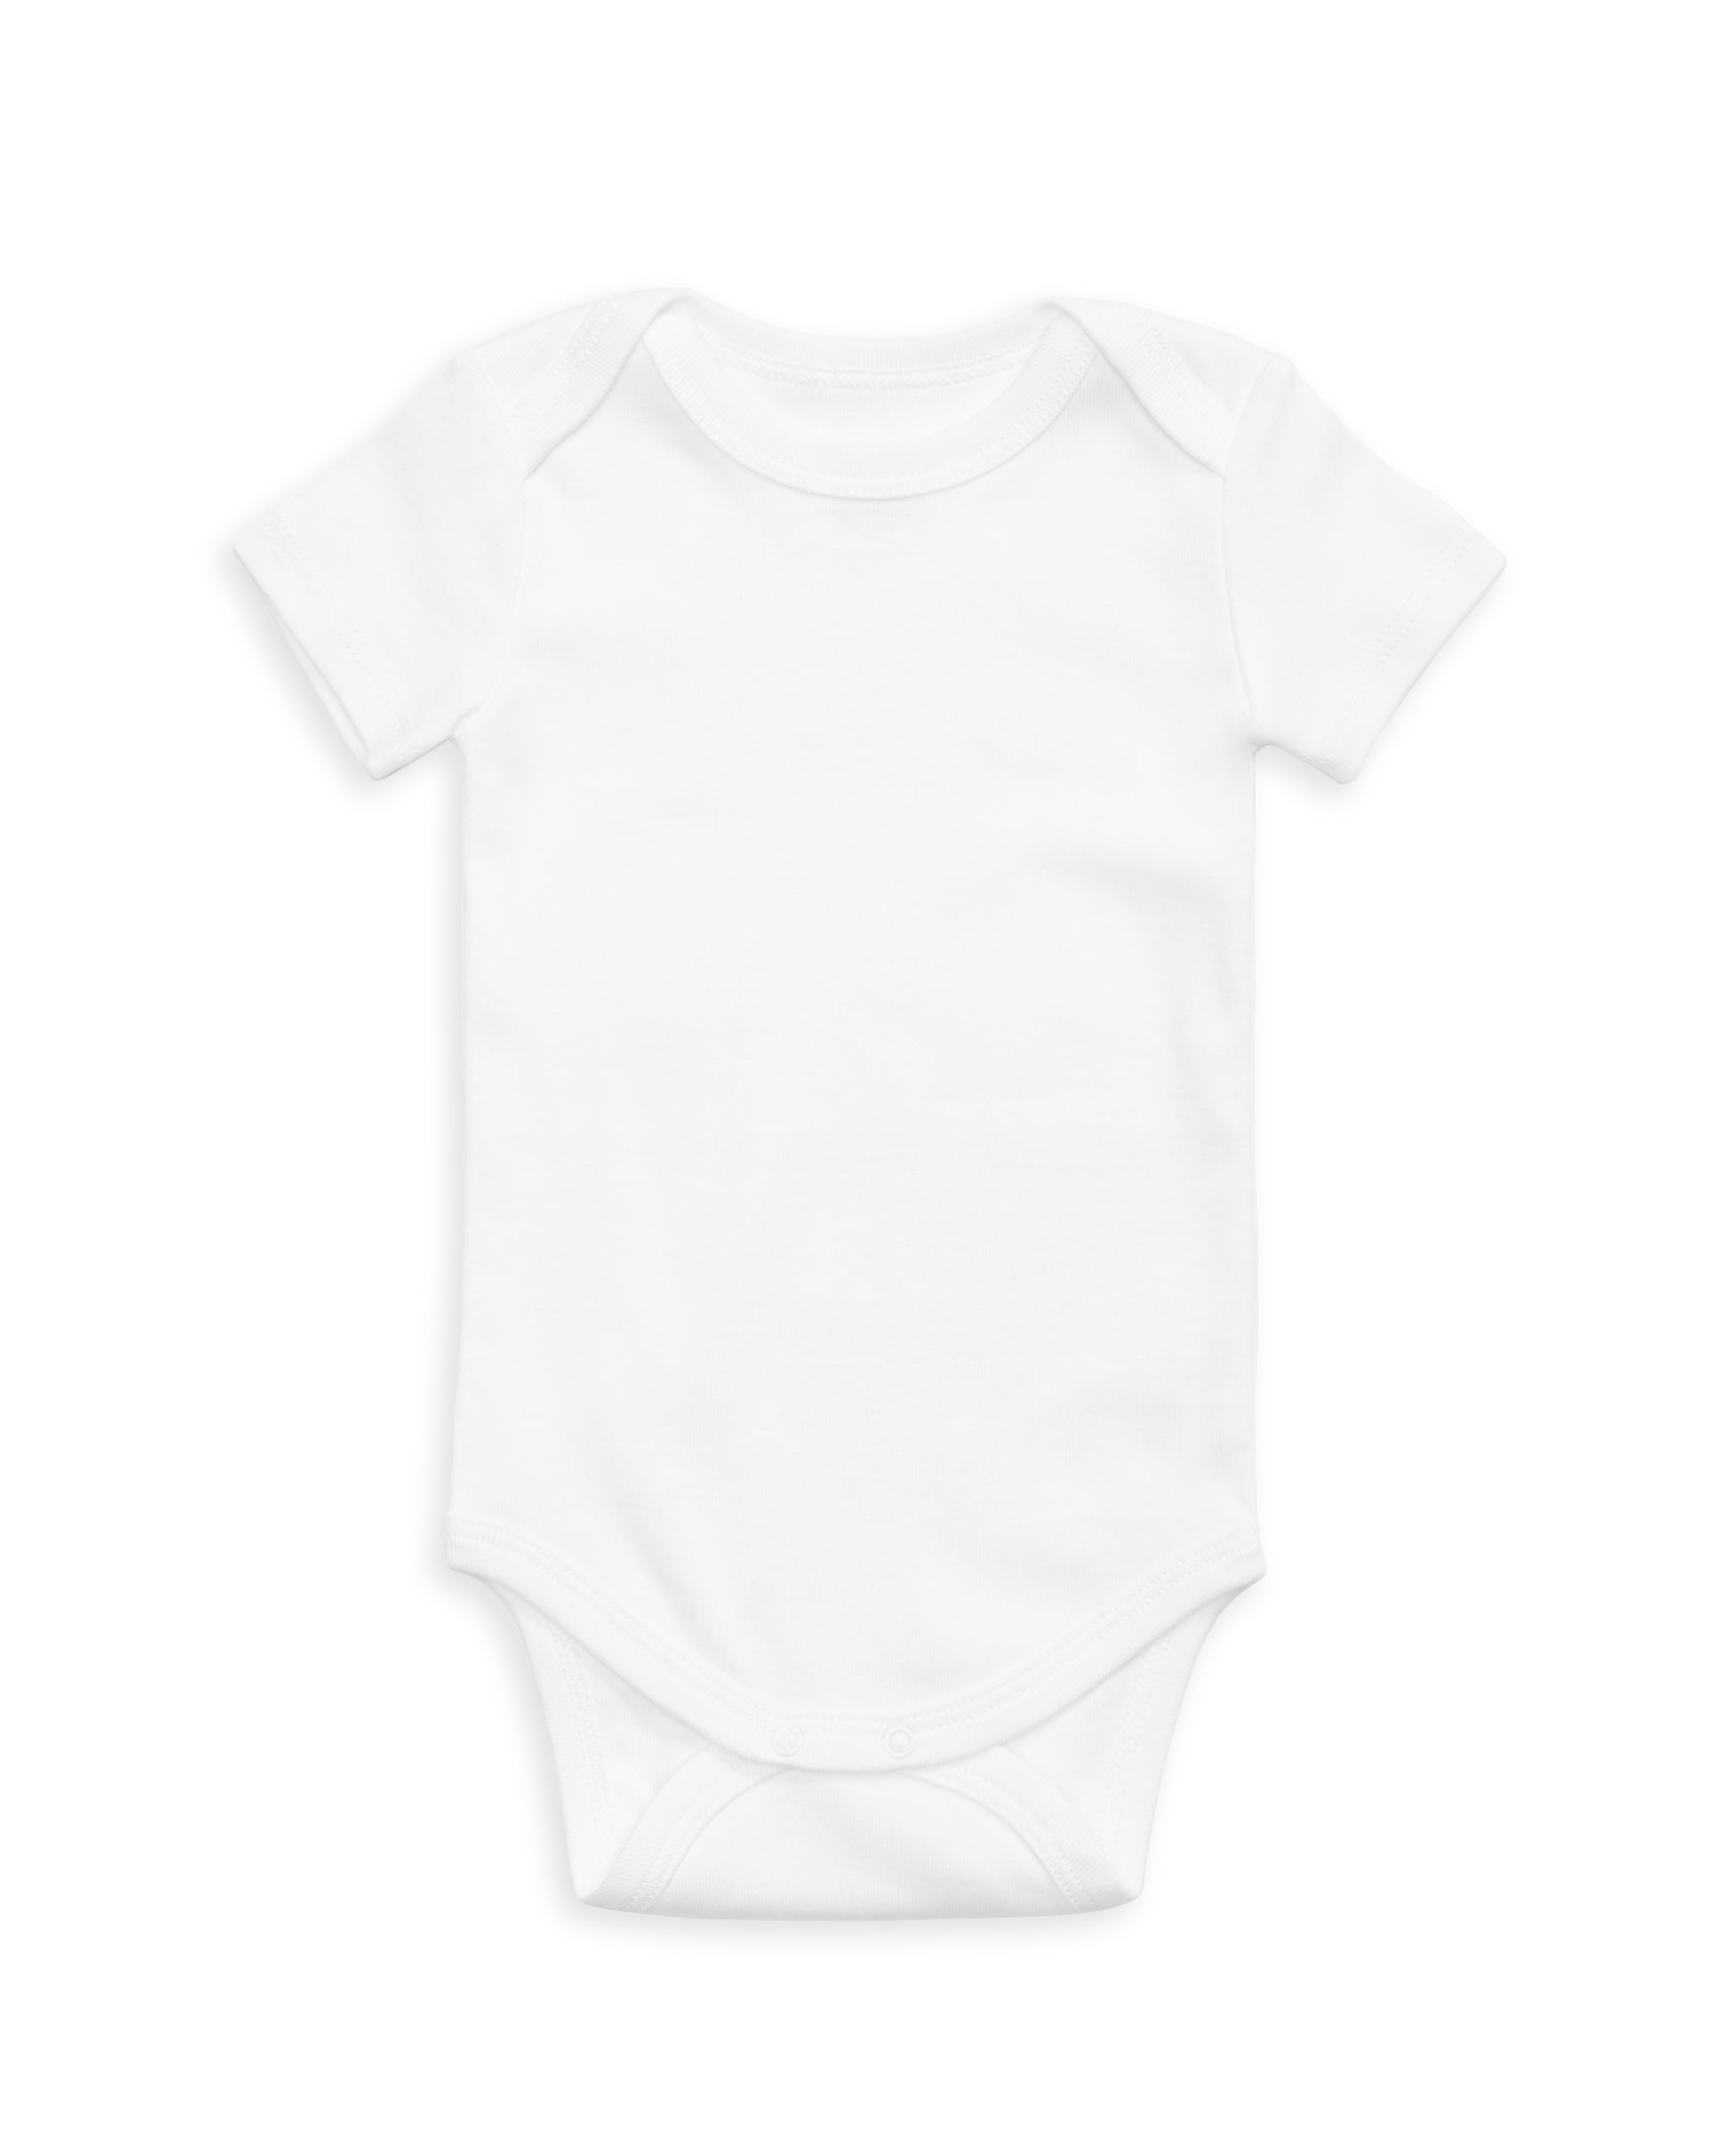 The Daily Short Sleeve Onesie White